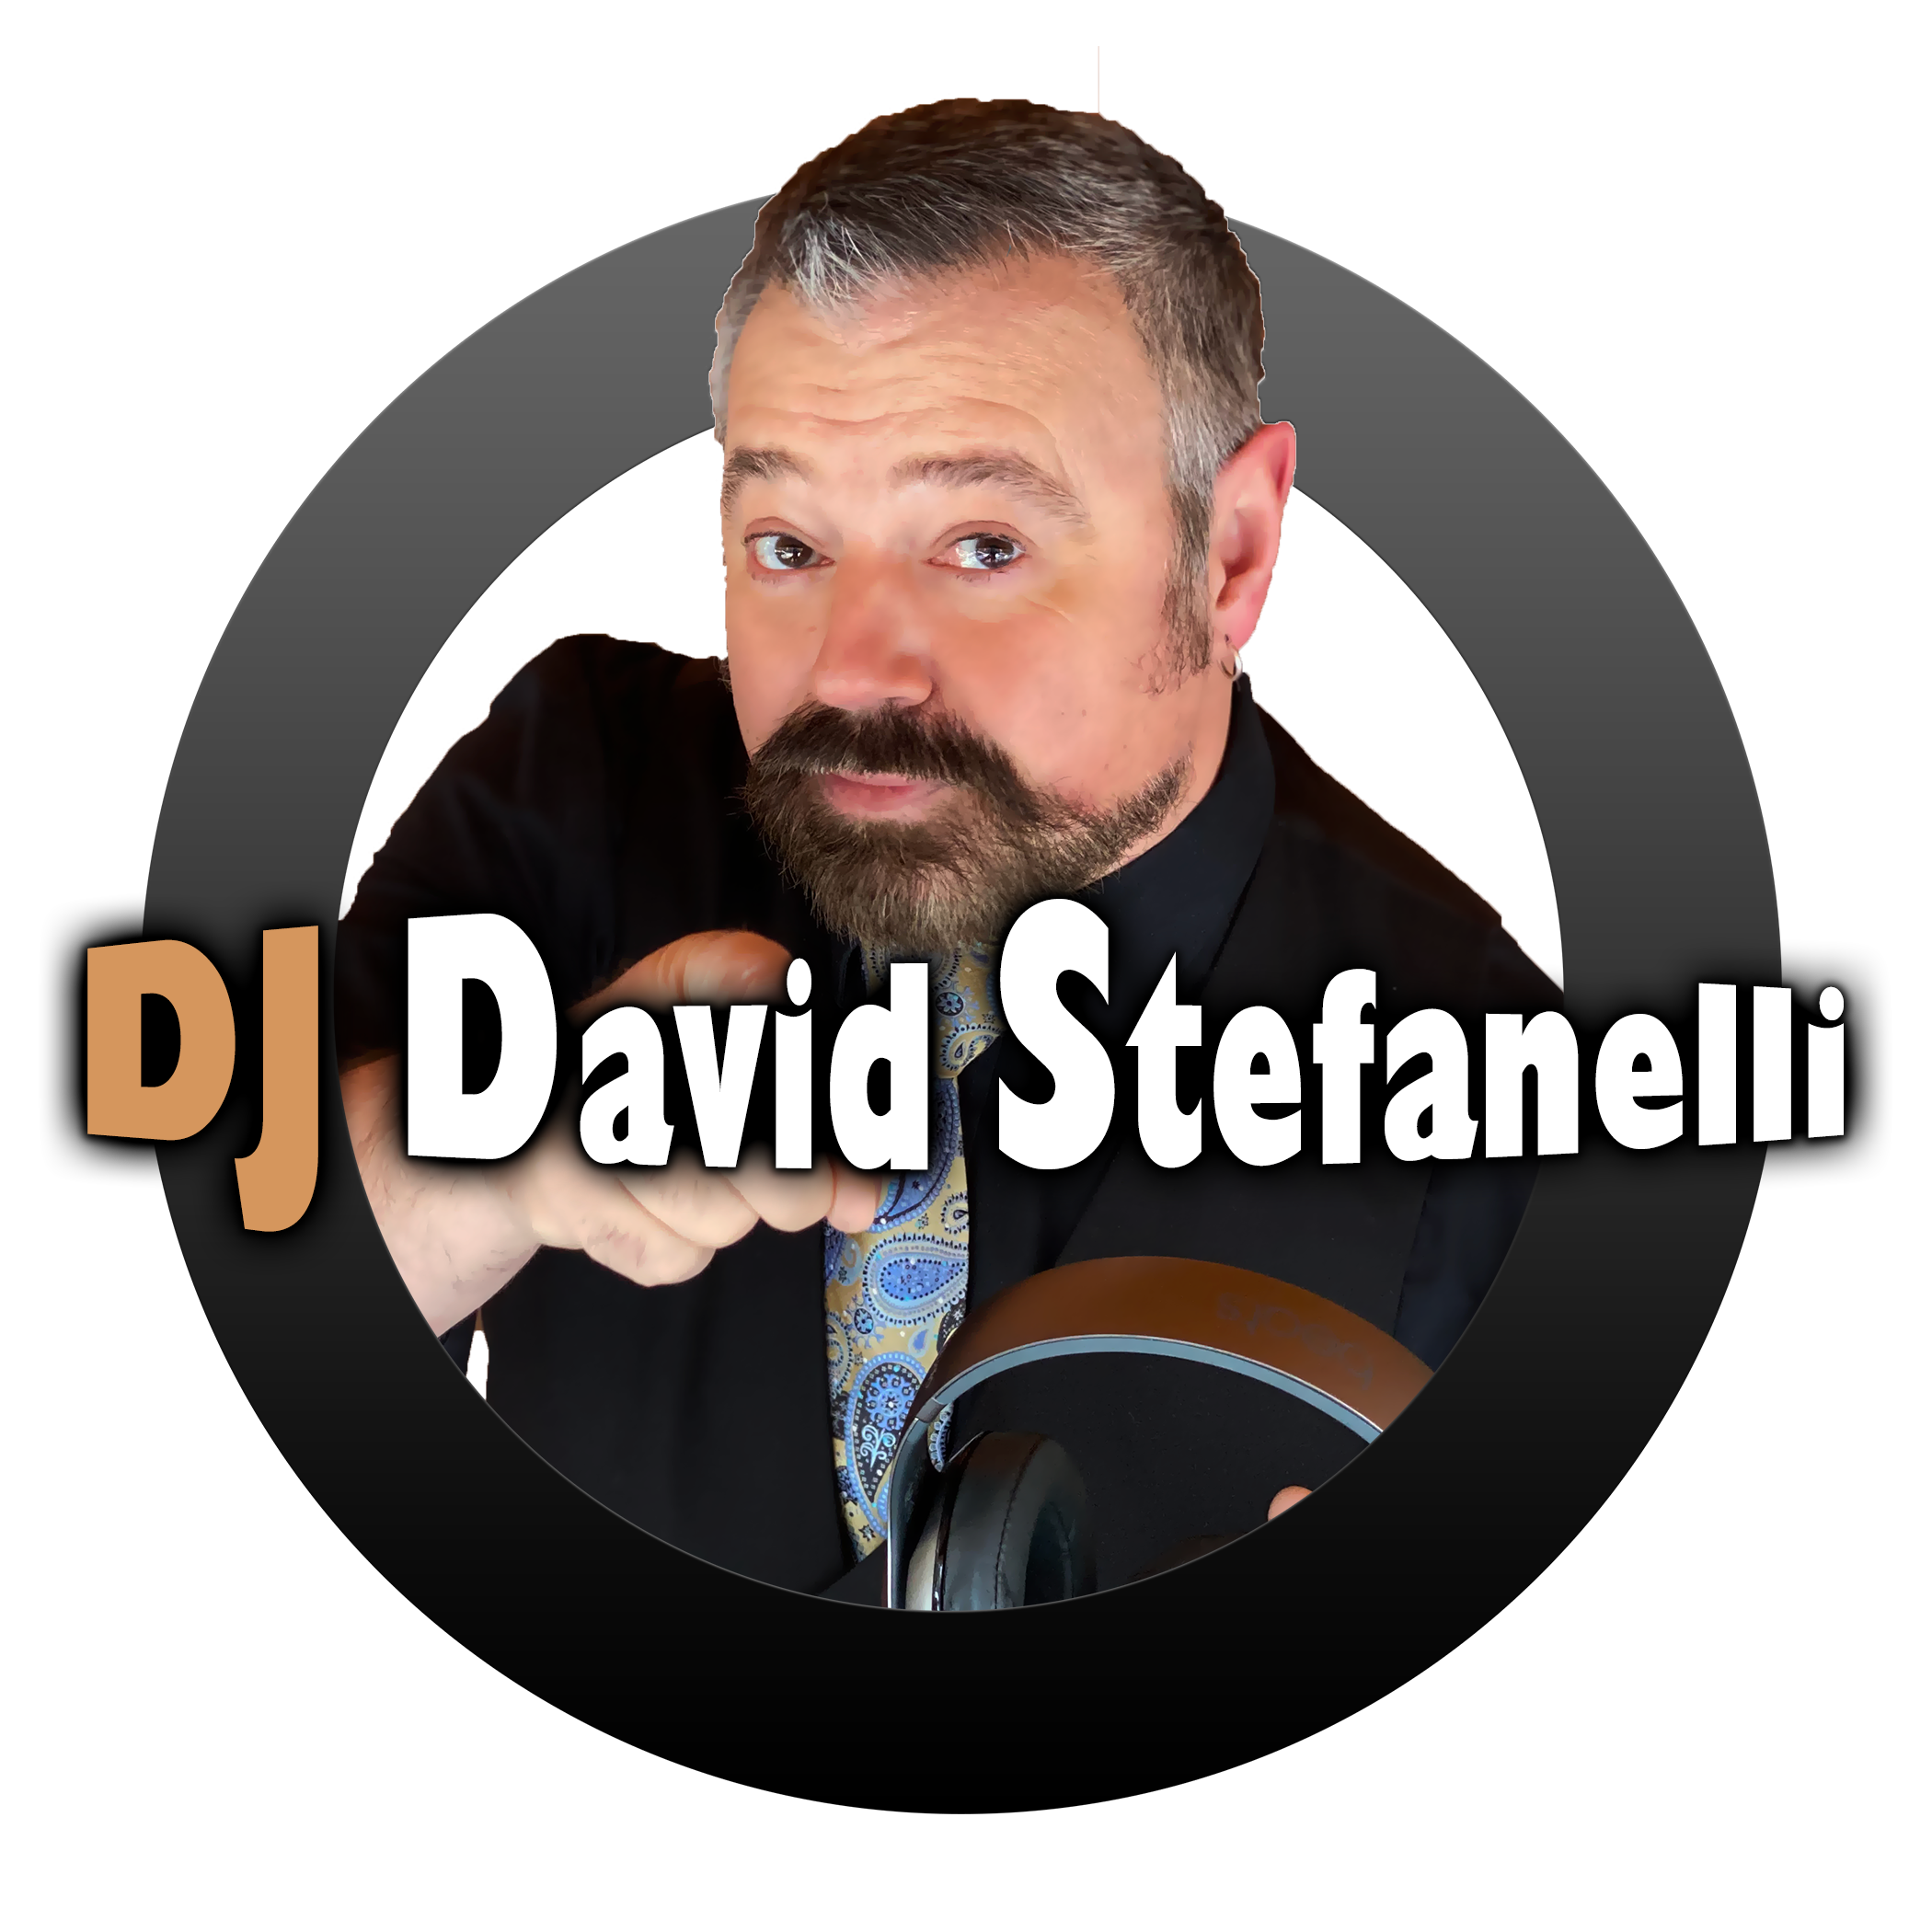 Wedding DJ David Stefanelli.